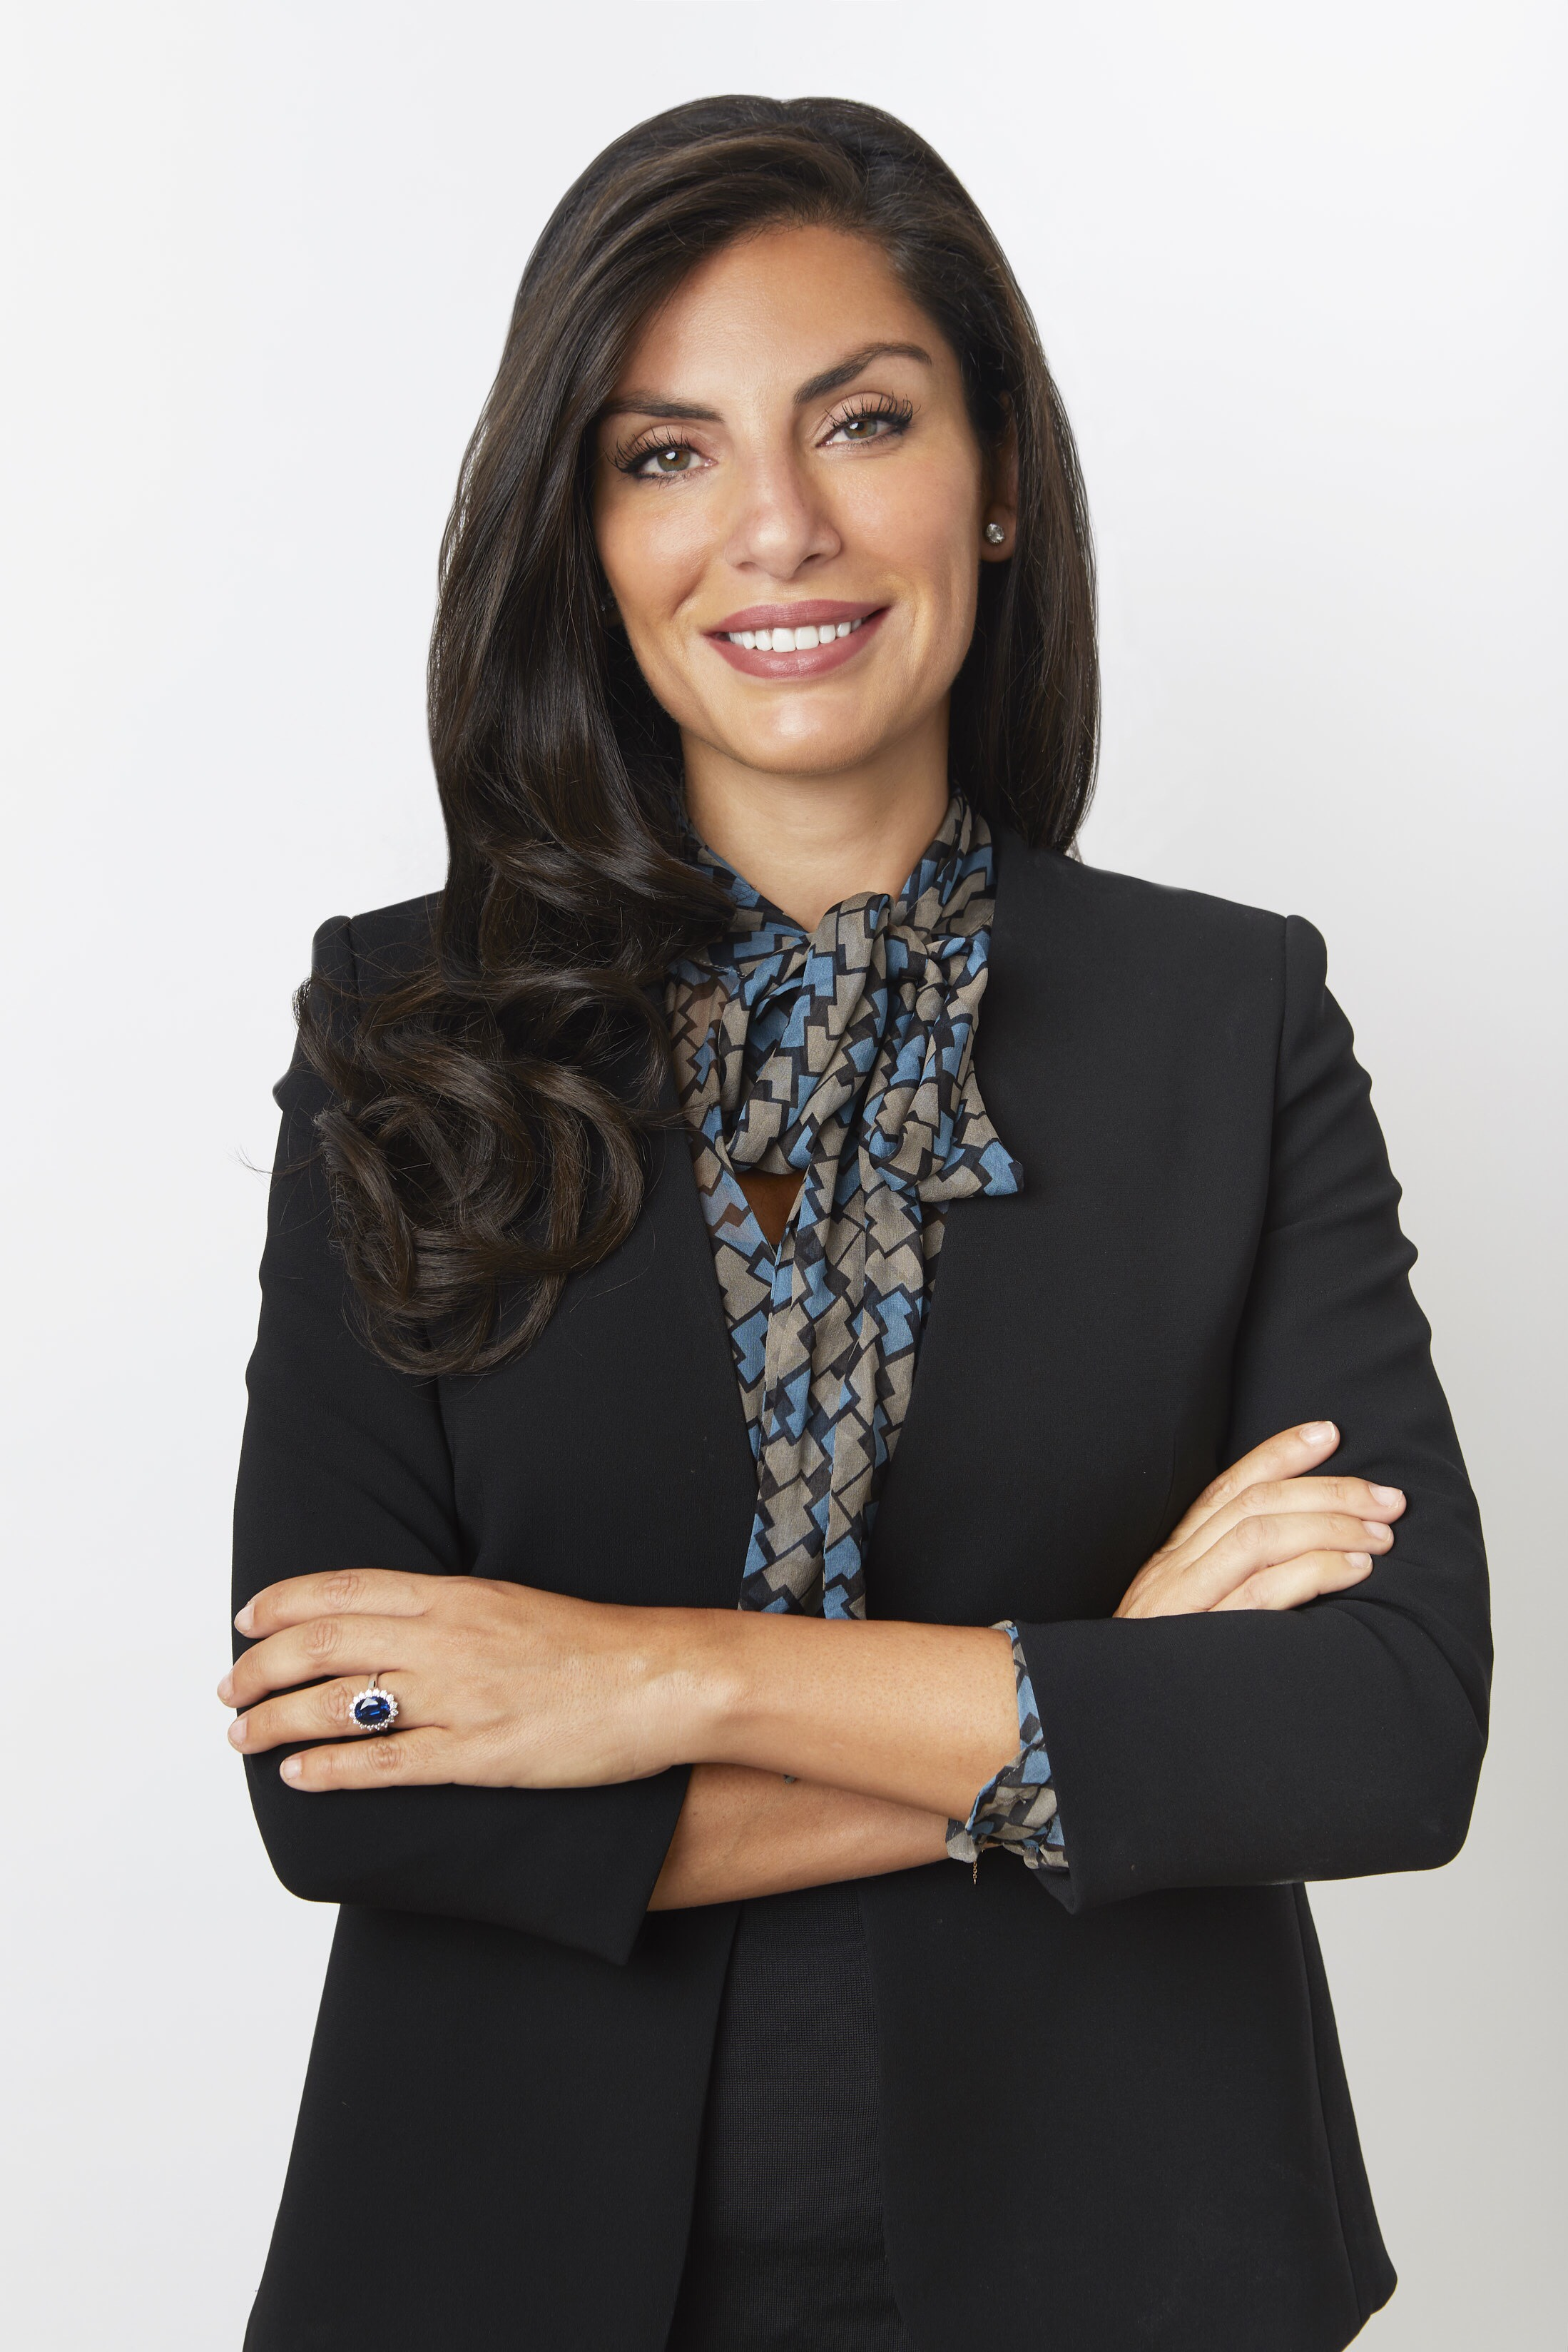 Dr Saliha Afridi, a Clinical Psychologist and the Managing Director of LightHouse Arabia